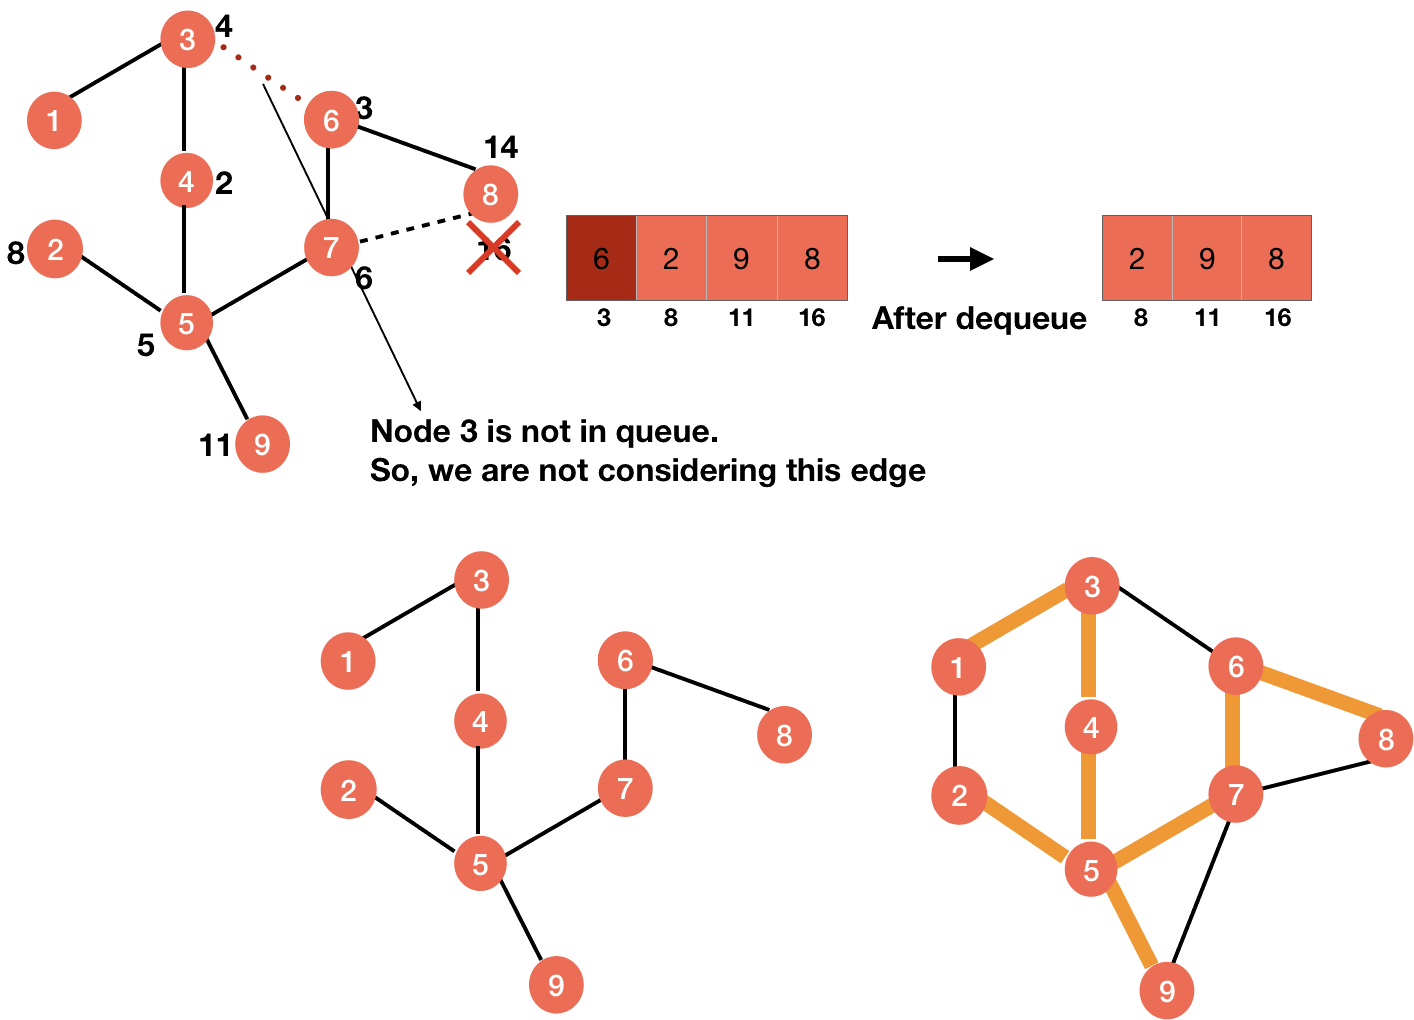 step-wise prim algorithm